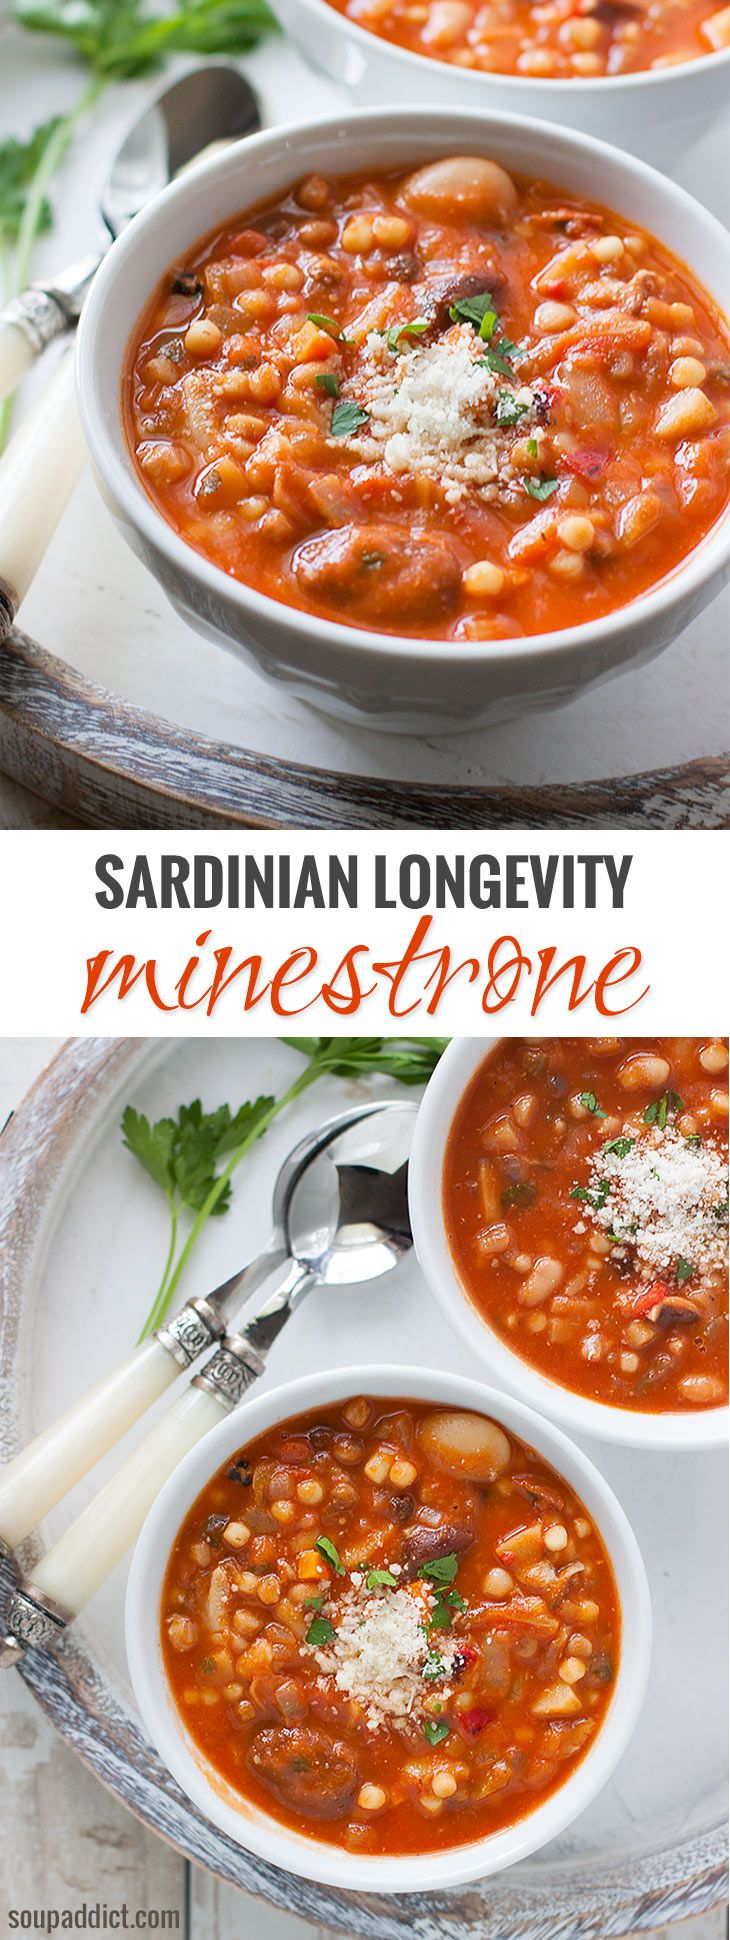 Sardinian Longevity Minestrone Soup - inspired by the super healthy soup enjoyed by the long-living residents of Sardinia.